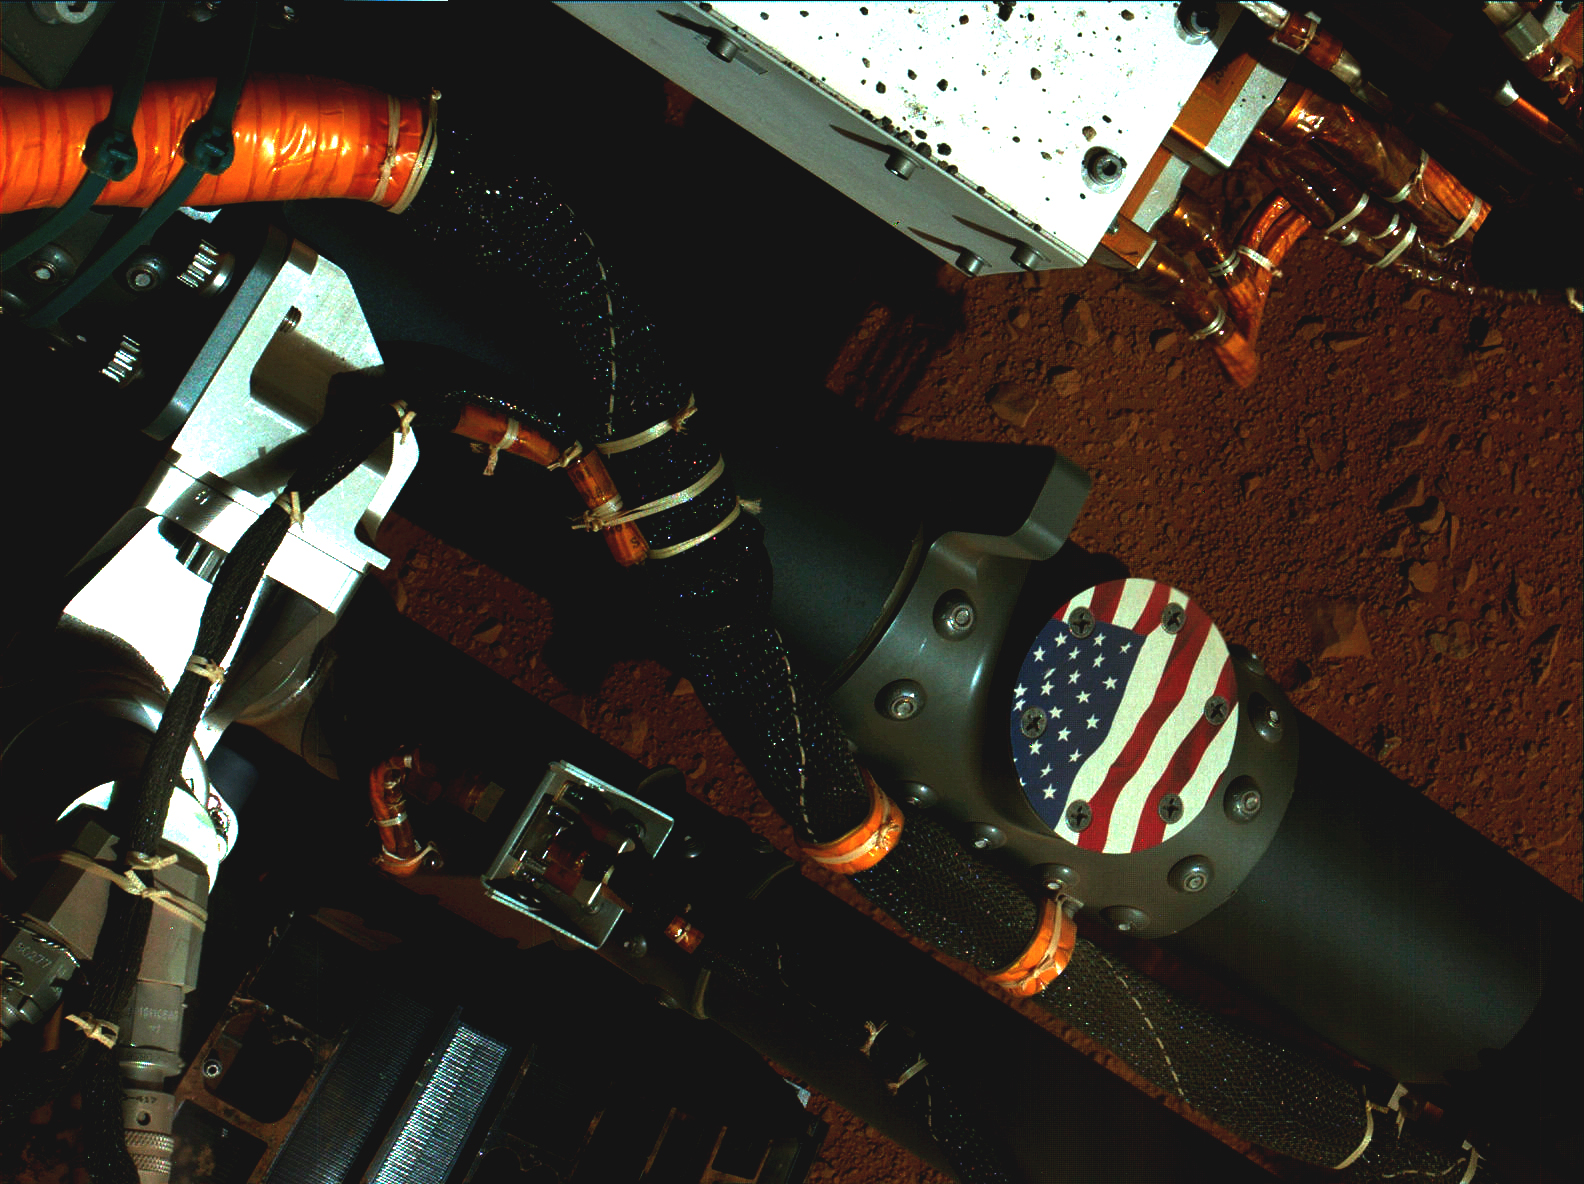 u.s. flag visible on hardware on mars rover